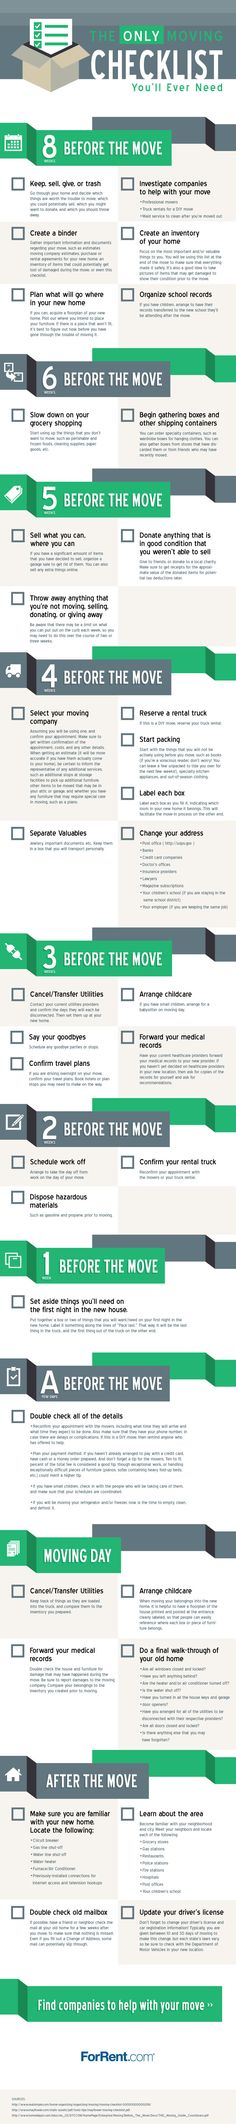 The Moving Checklist - Apartment Tips - ForRent.com